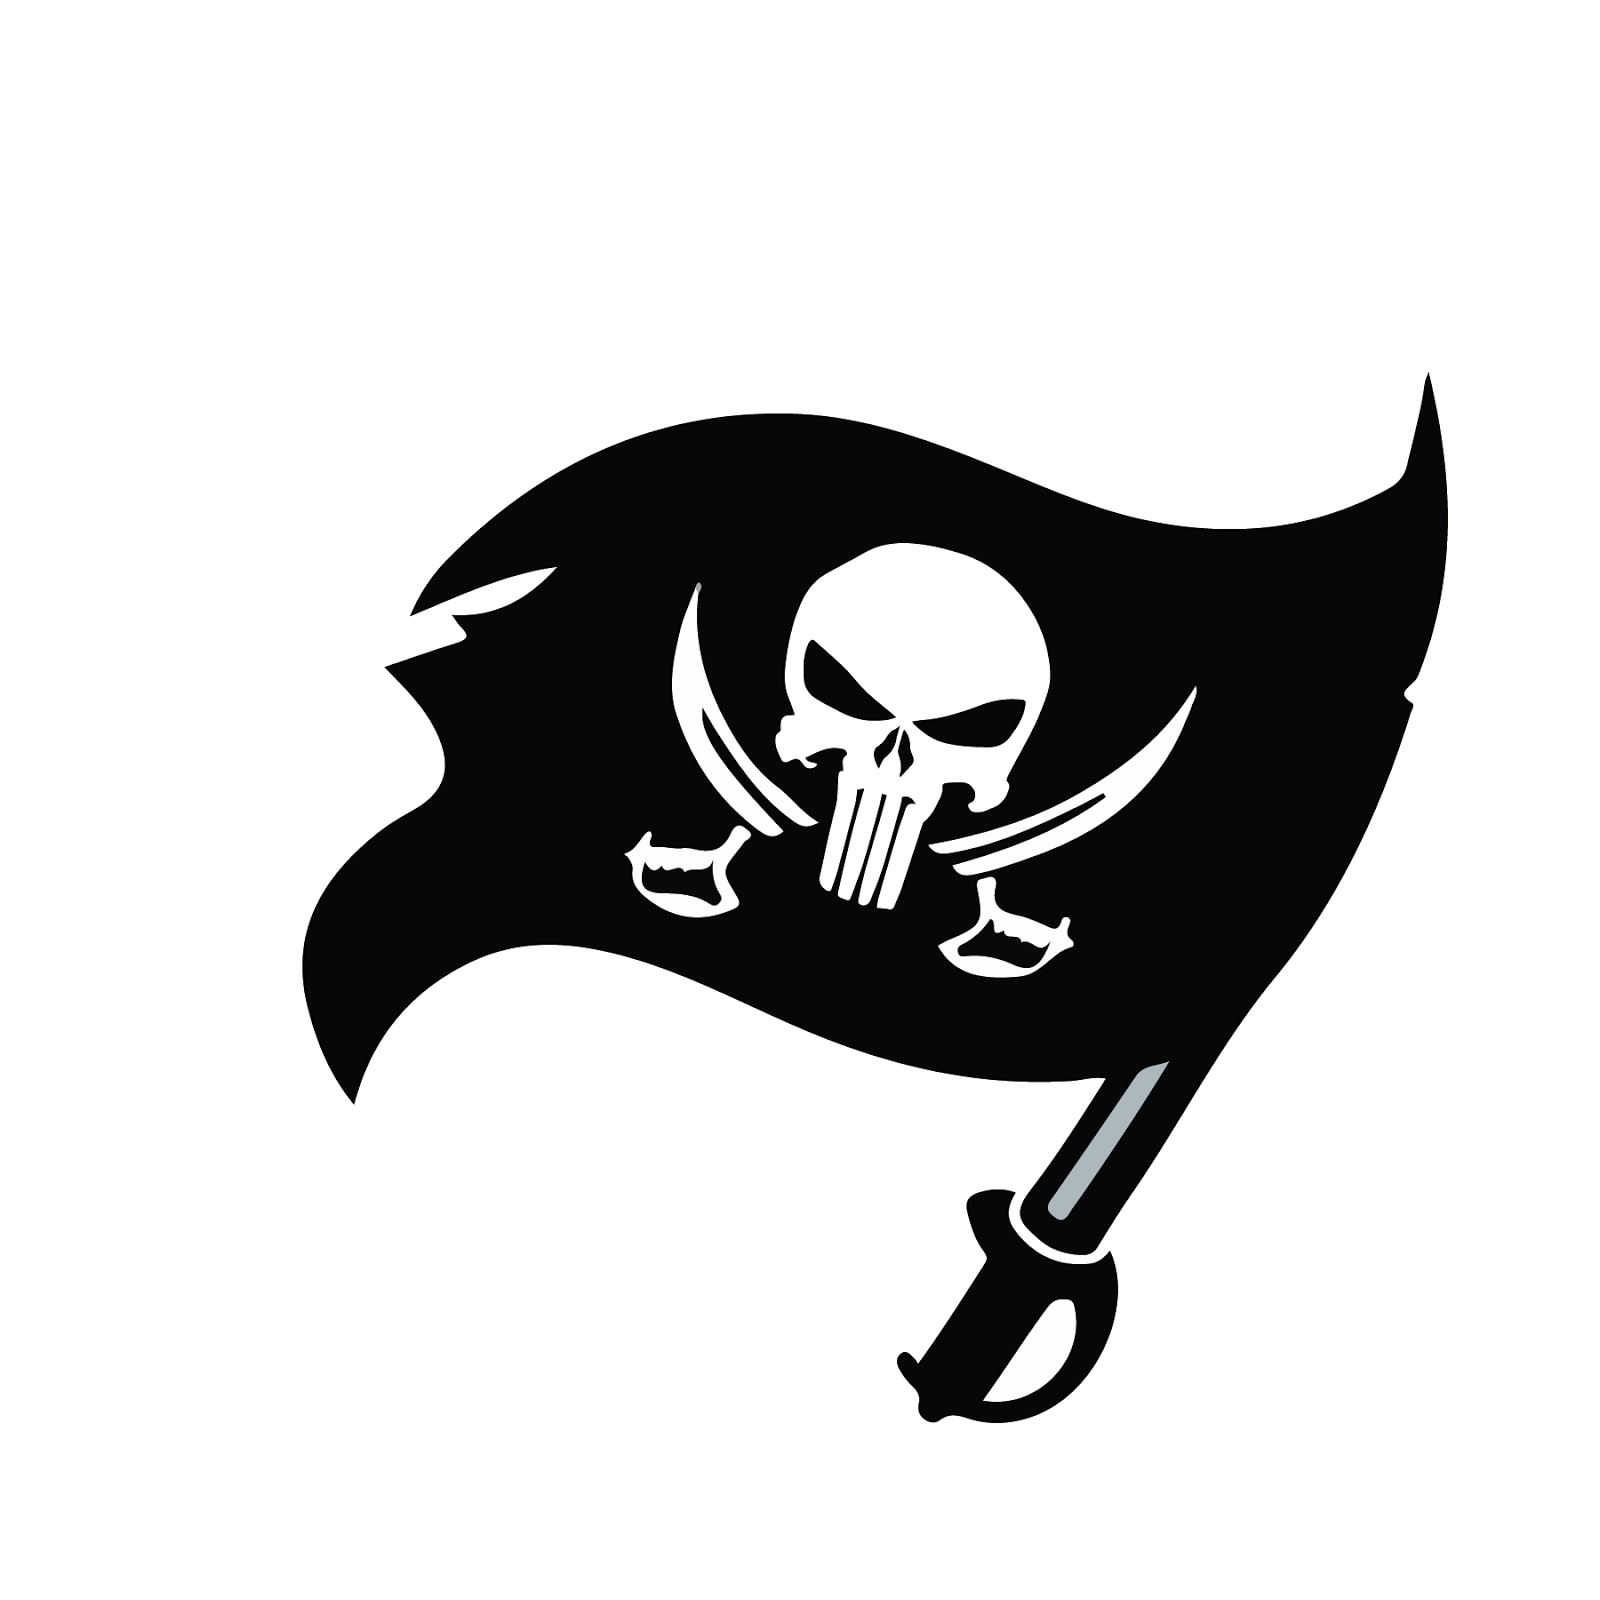 Tampa Bay Bucaneers, metal, logo, re-imagined